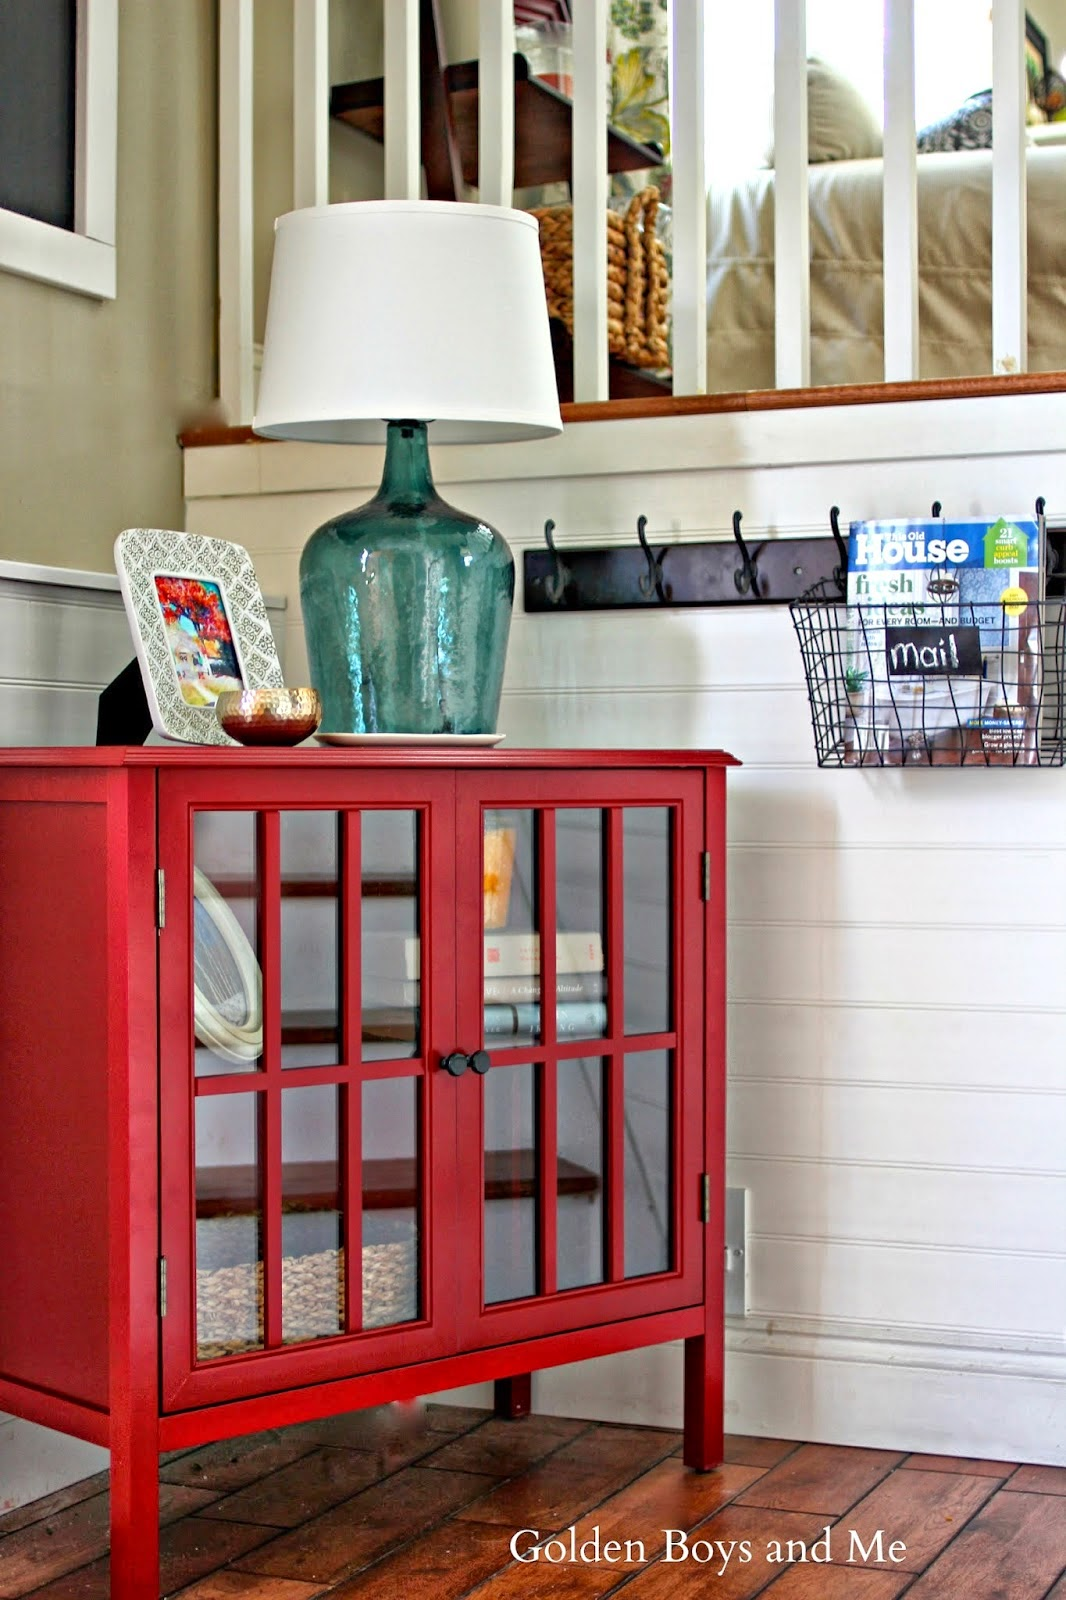 Wire Basket To Hold Mail In Entryway Www.goldenboysandme.com